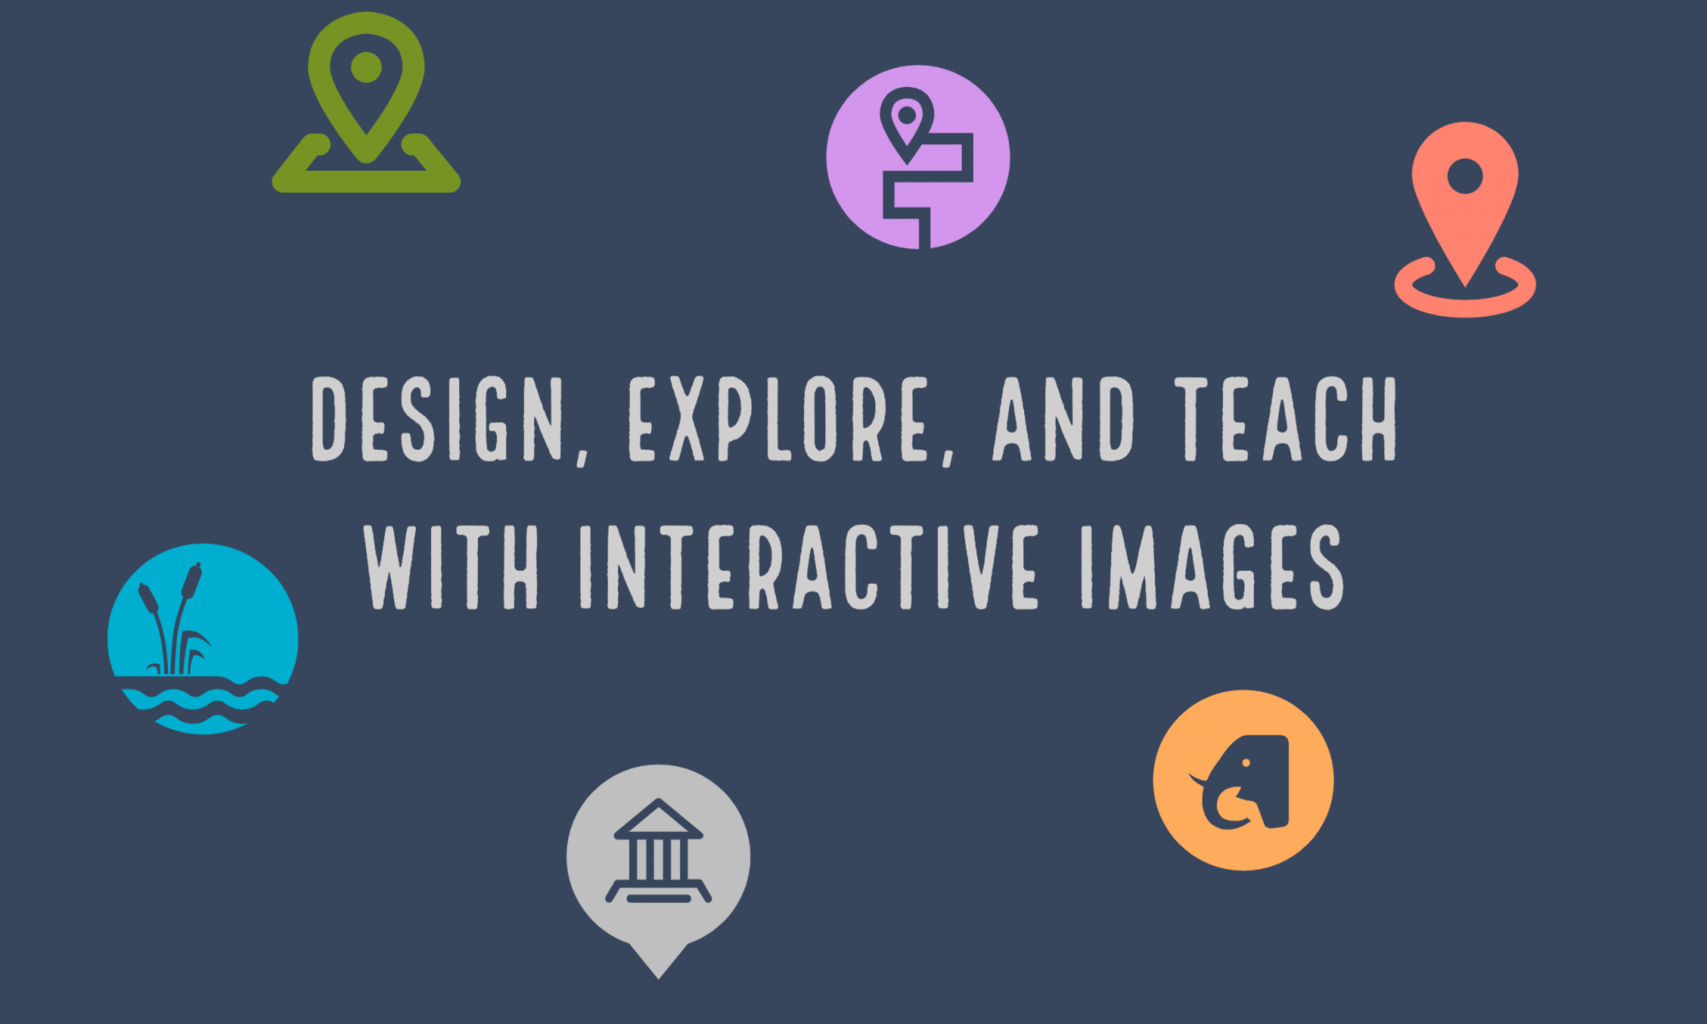 Design, Explore, and Teach with Interactive Images